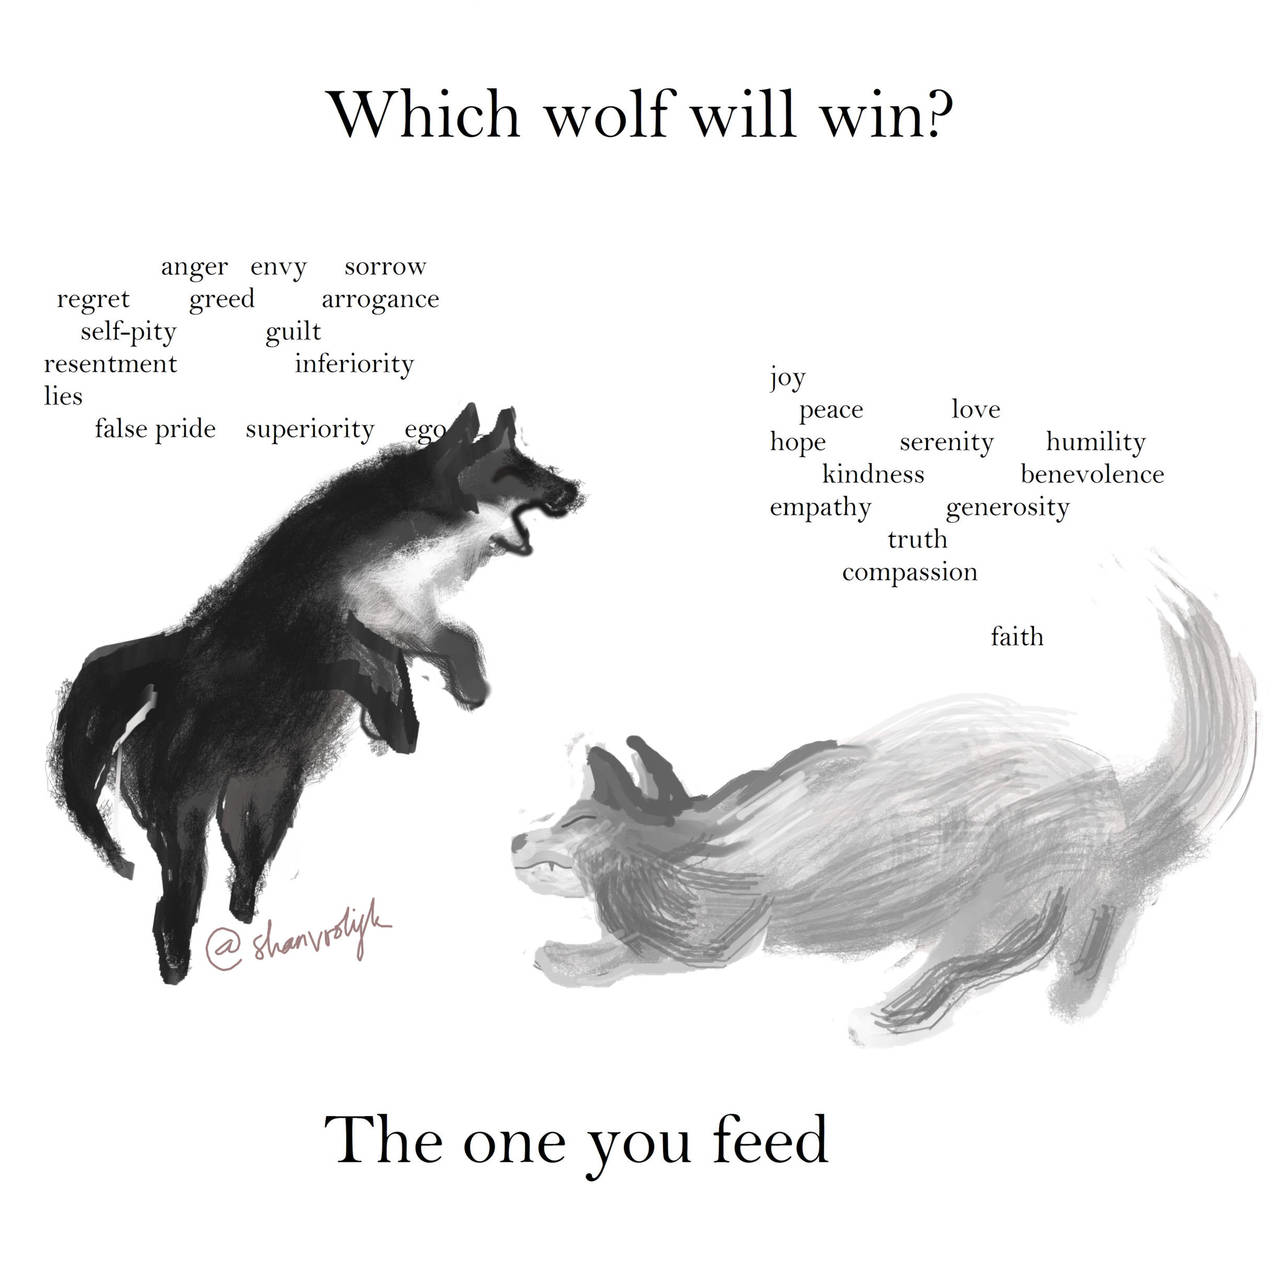 The One You Feed - Wolves by ShanVrolijk